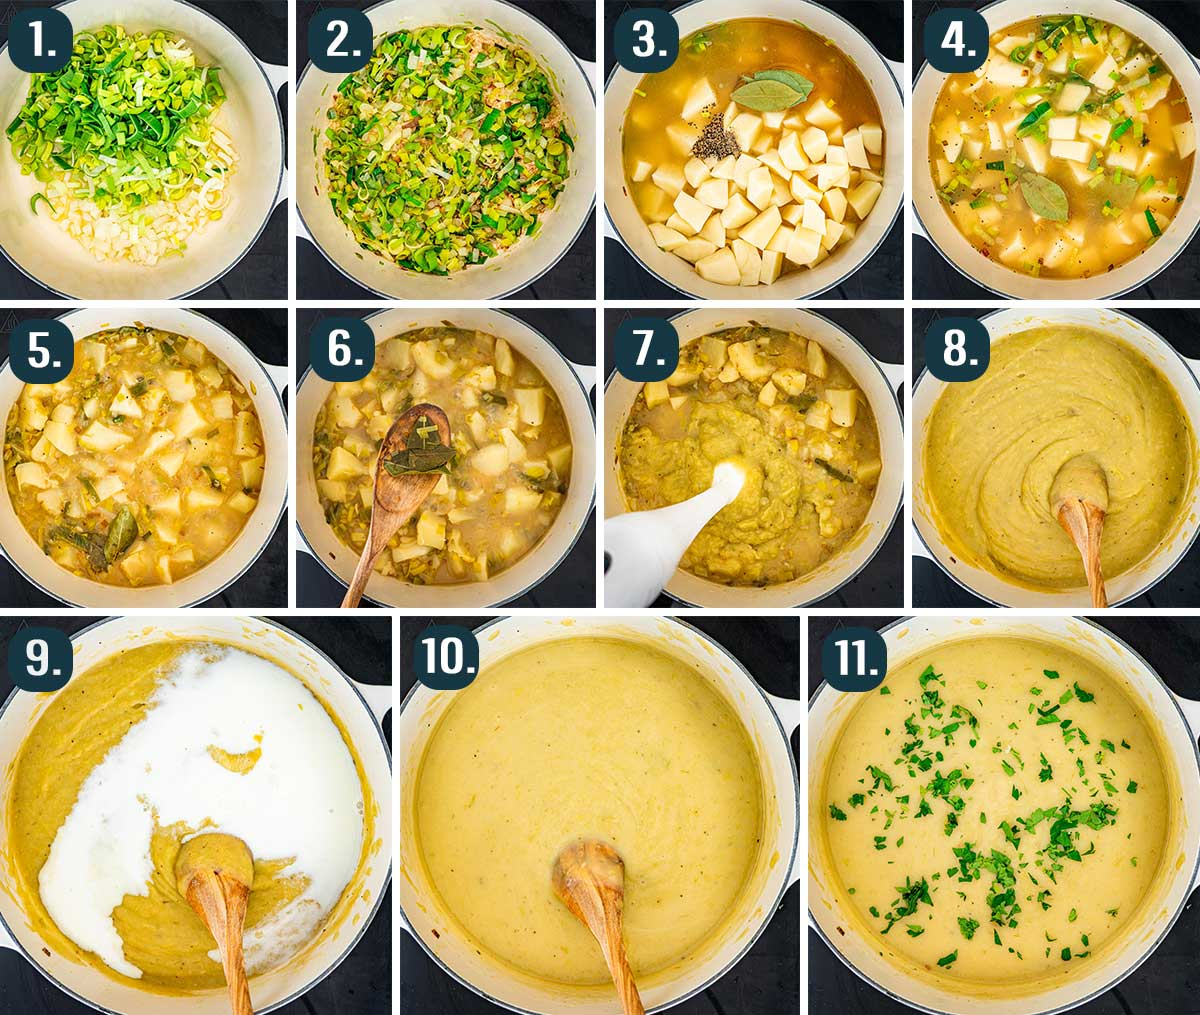 process shots showing how to make potato leek soup